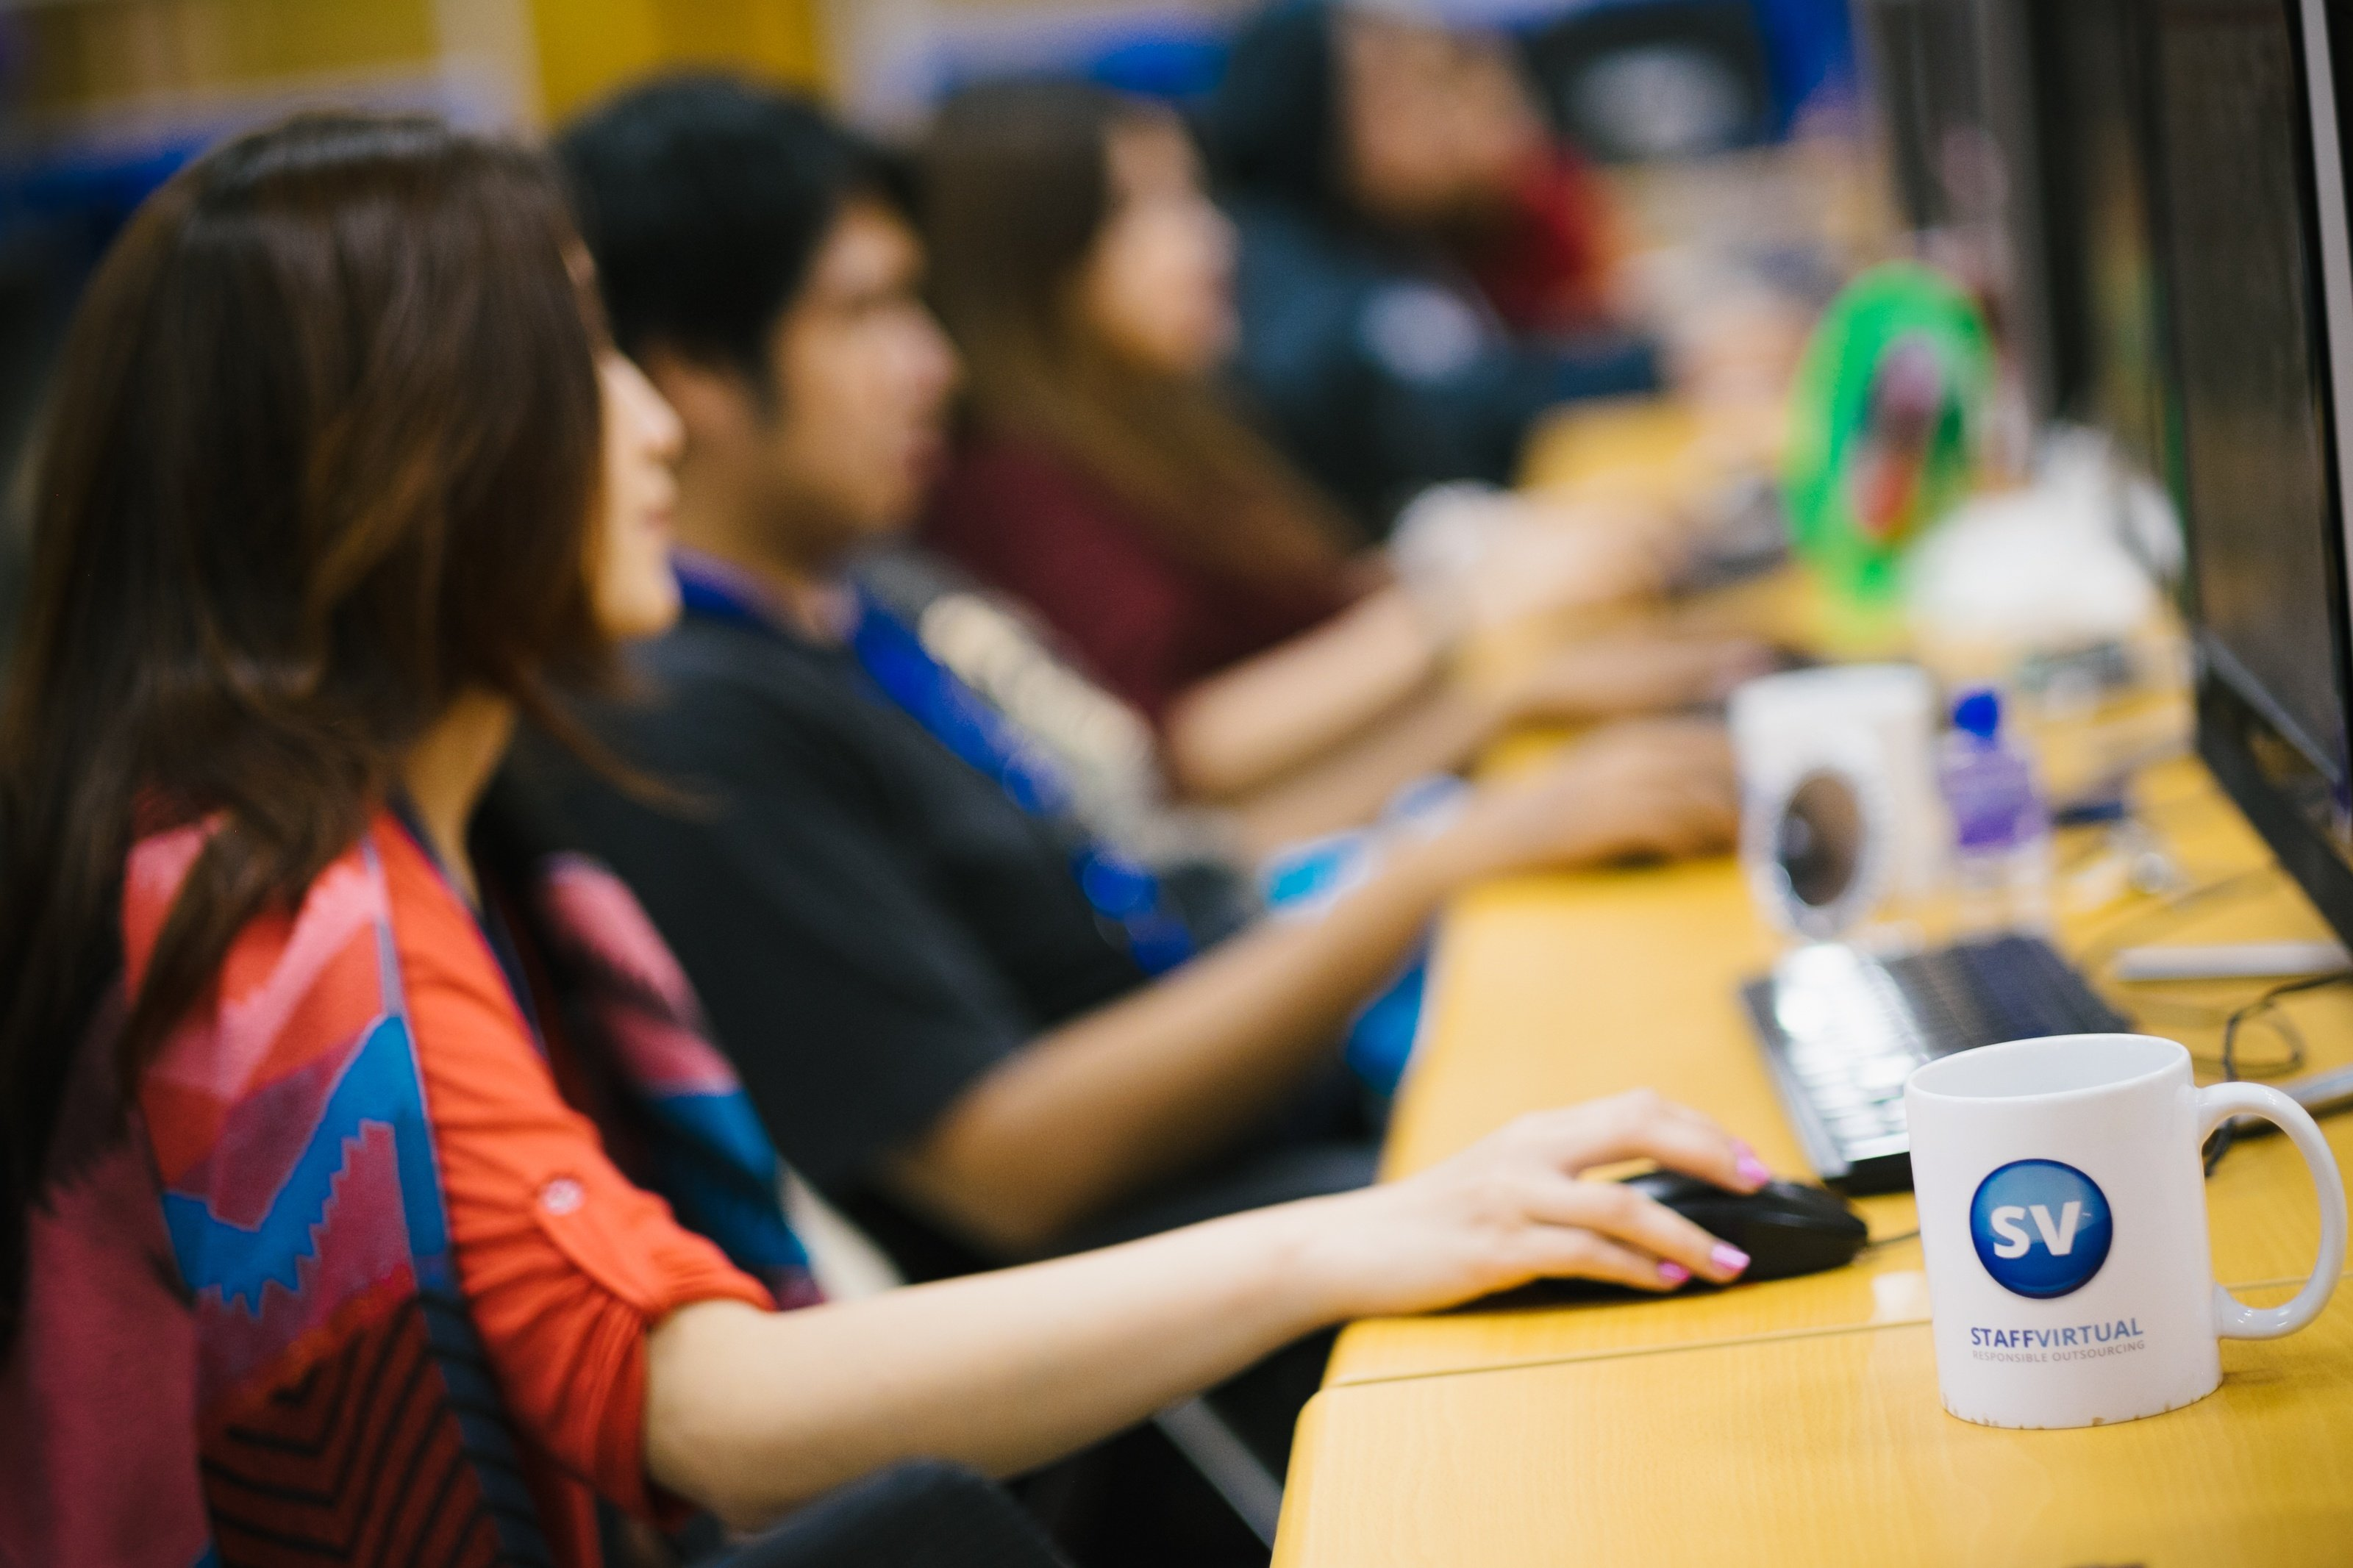 blog-staffvirtual-recruitment-process-outsourcing-in-the-Philippines-is-thriving